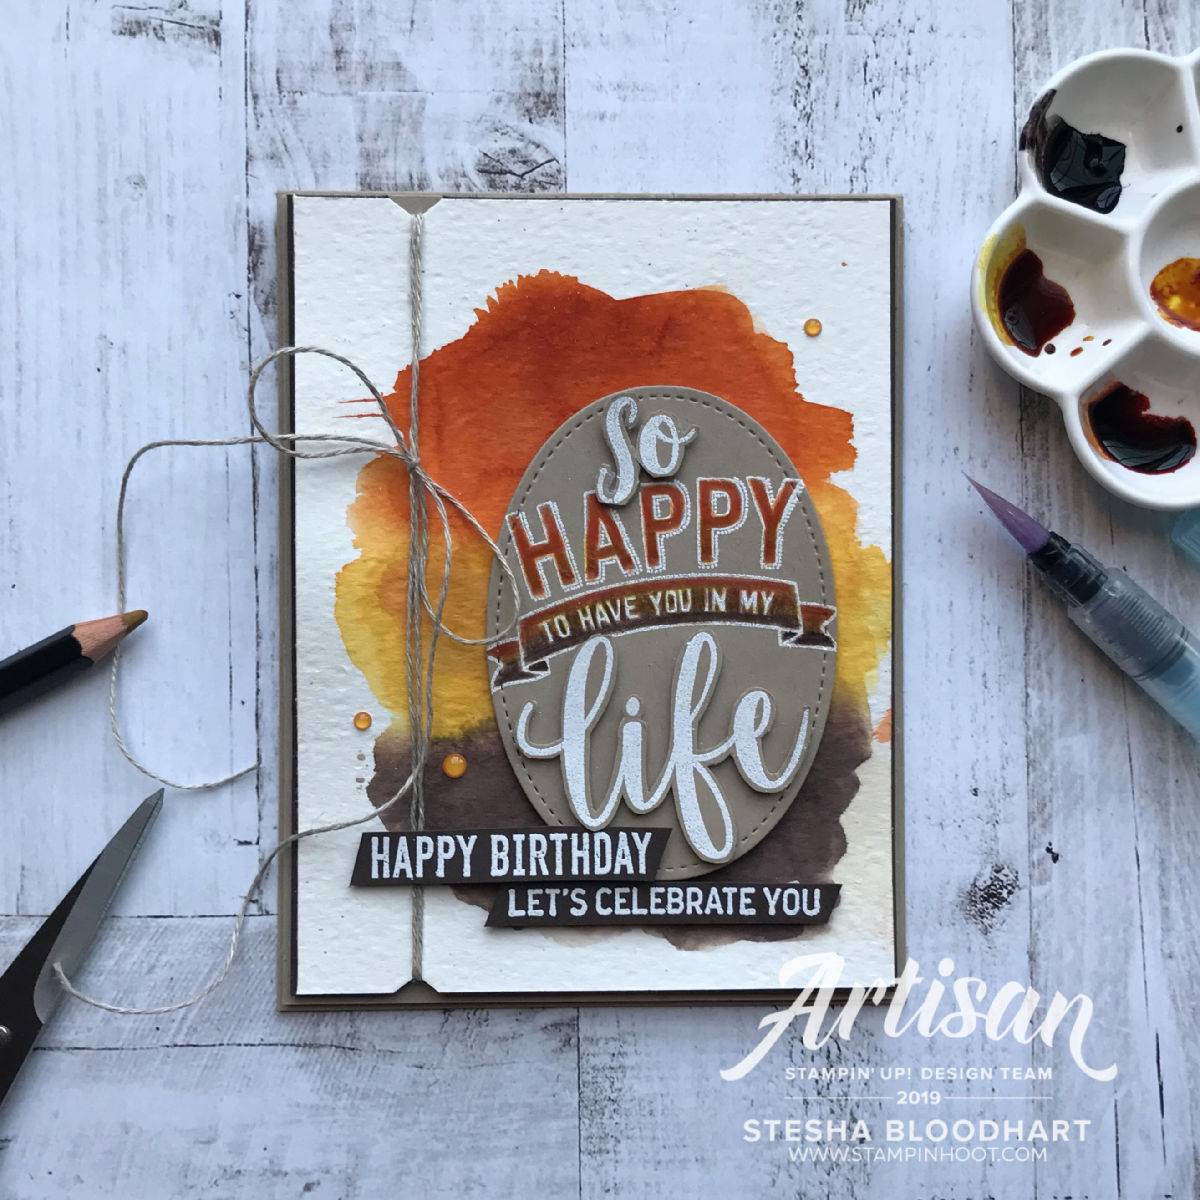 Happy 5th Birthday Preston, Amazing Life Birthday Card by Stesha Bloodhart, Stampin' Hoot! 2019 Artisan